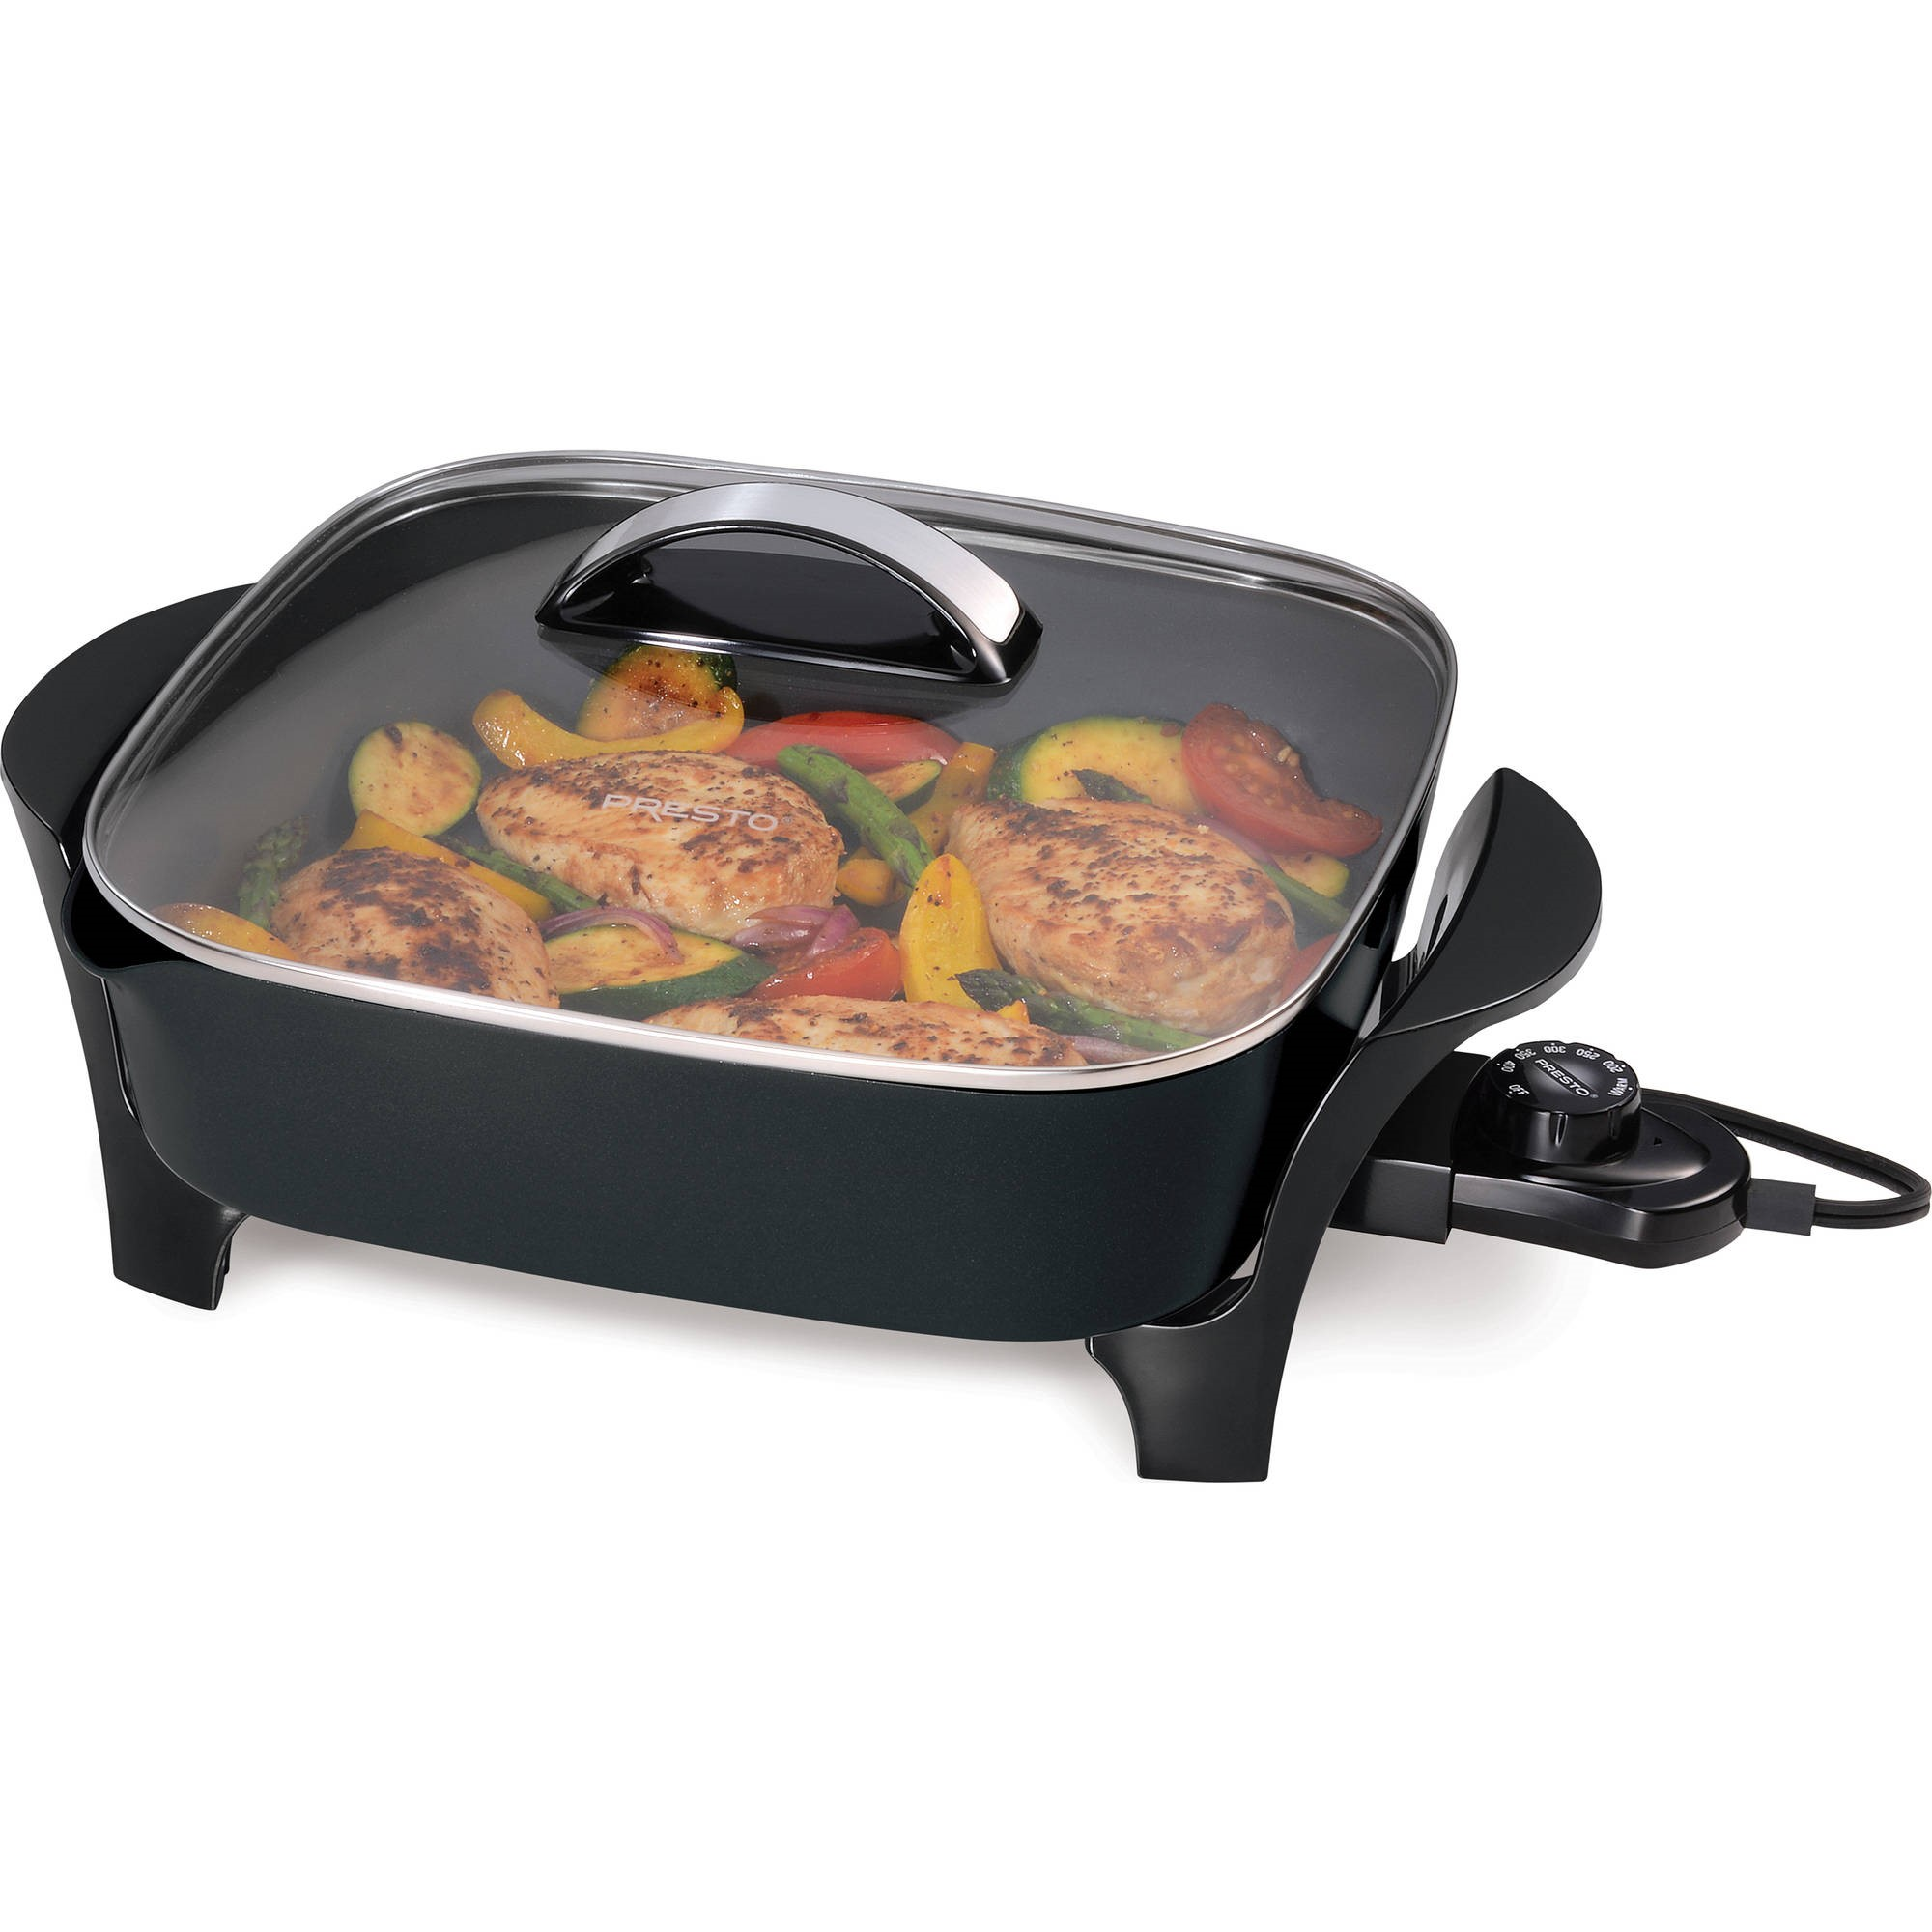 Presto 12-inch Electric Skillet with glass cover 07117